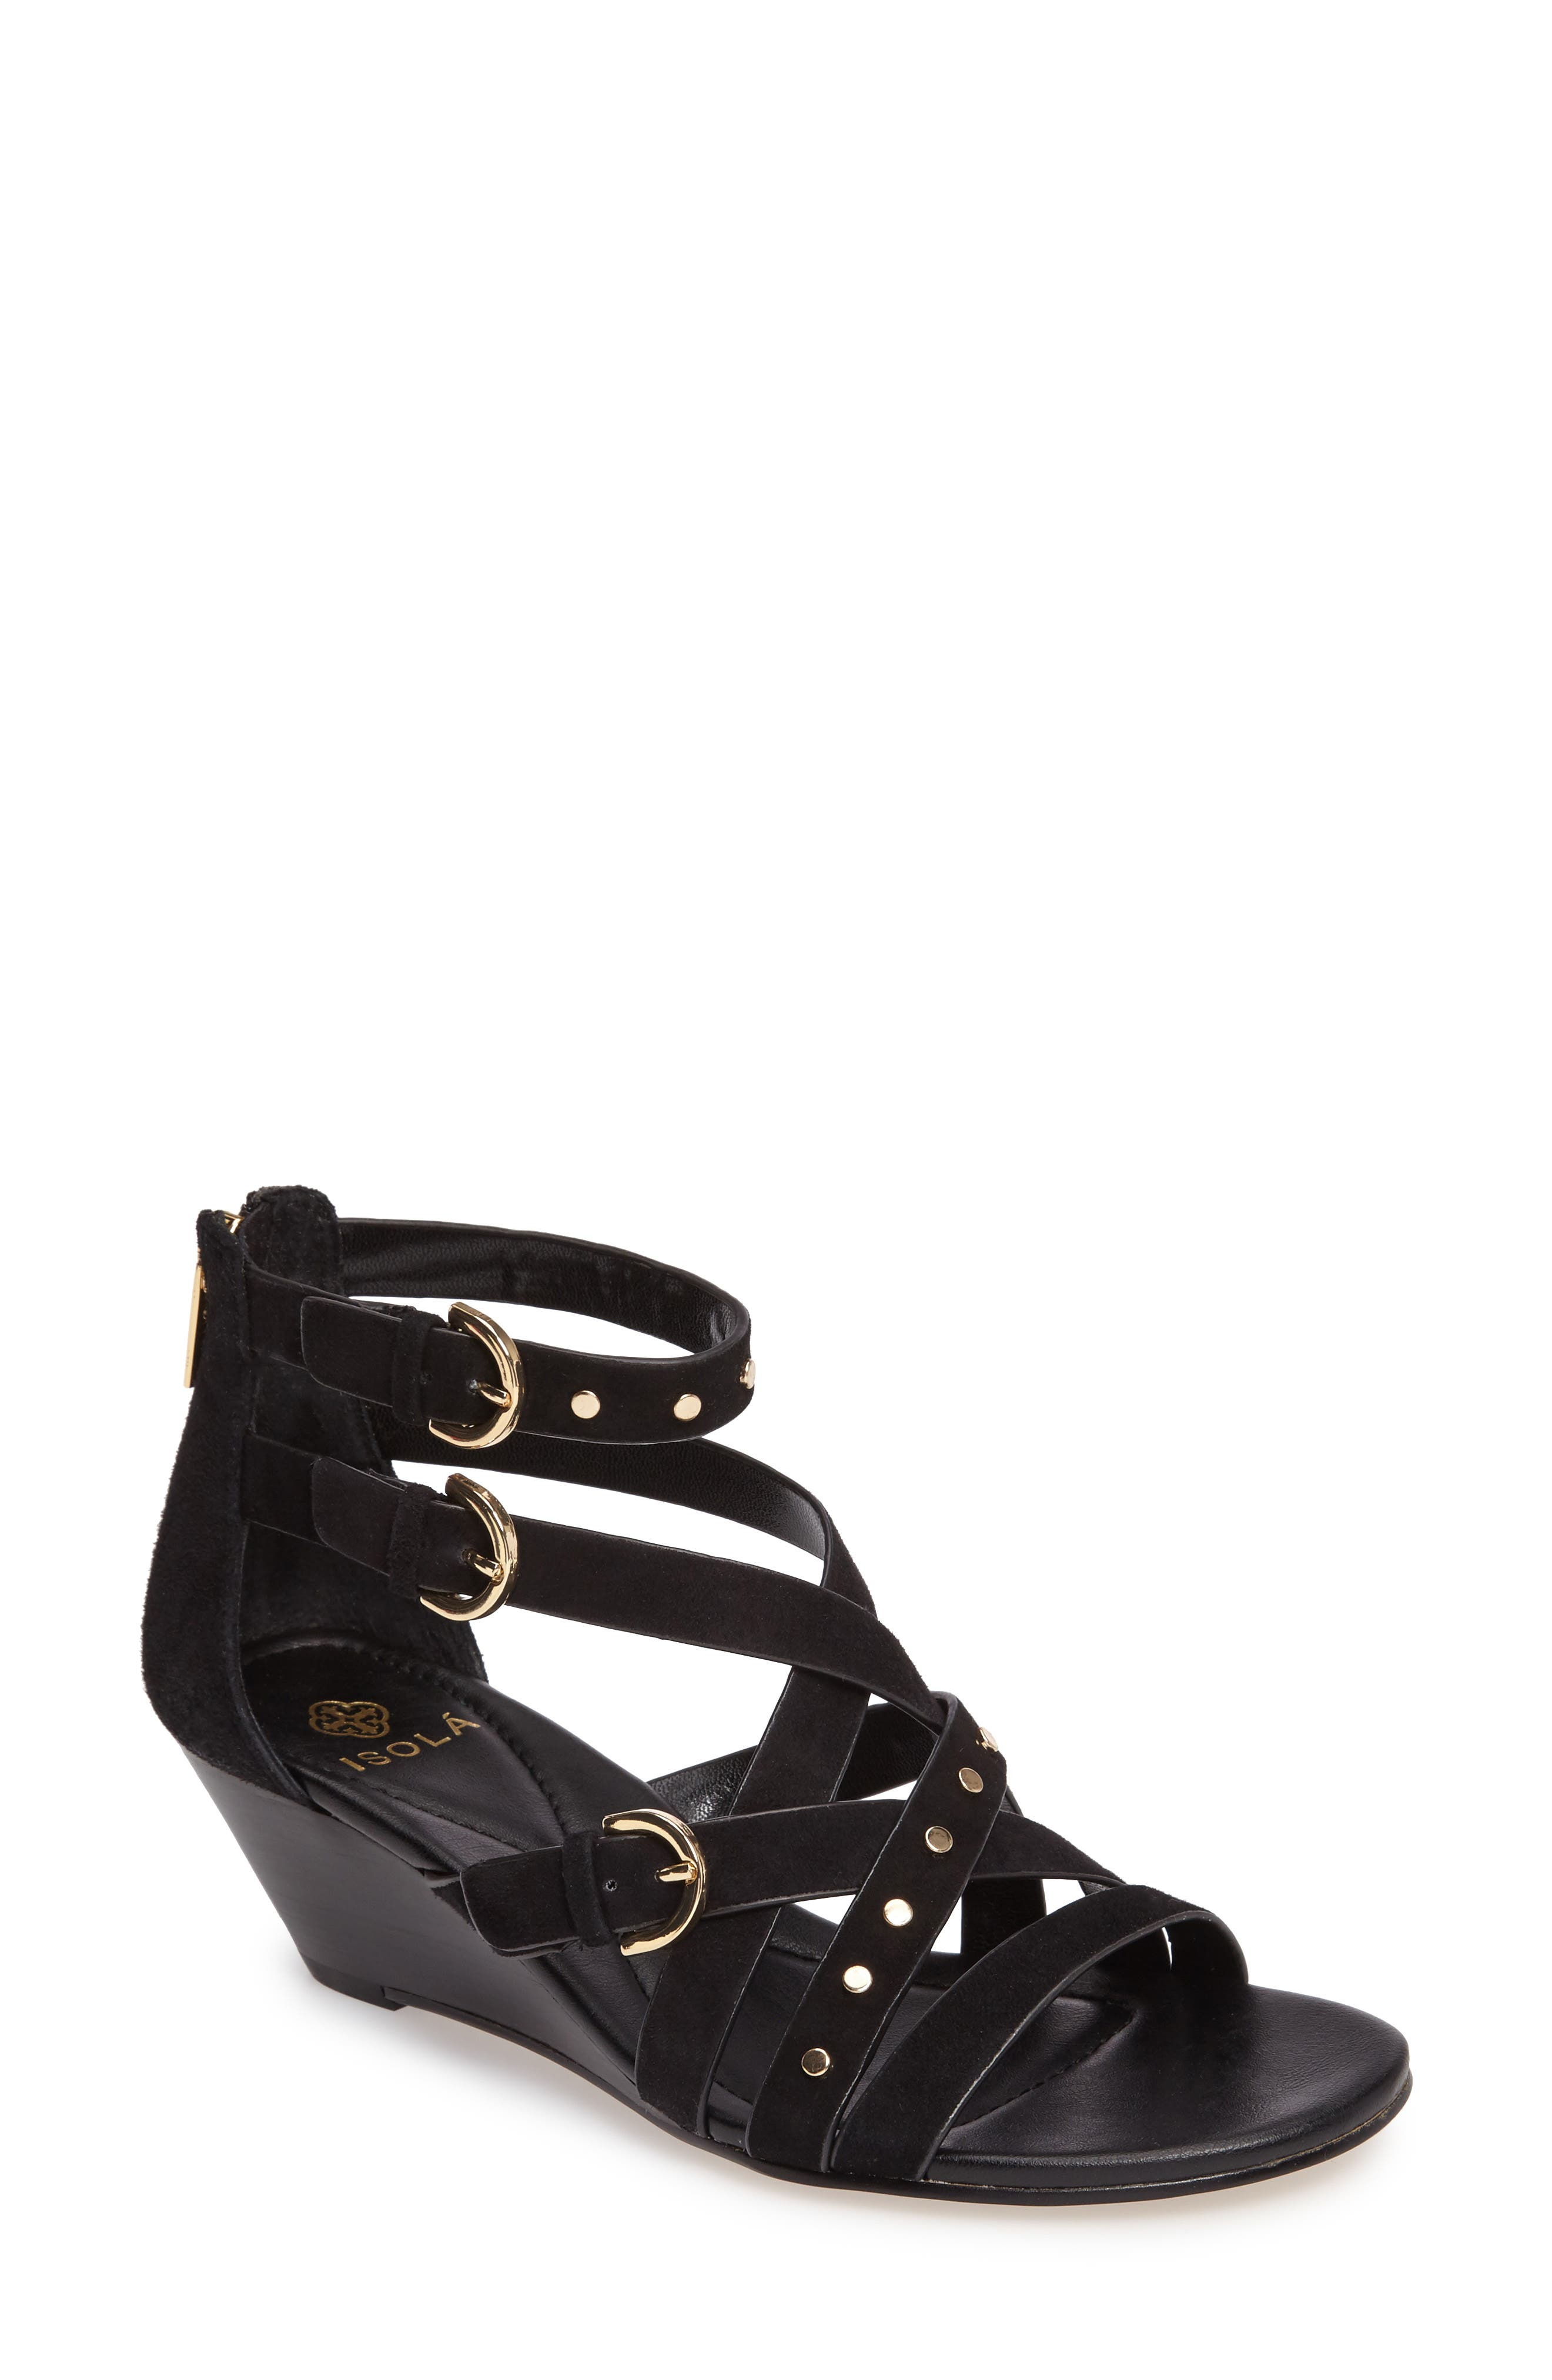 Petra Strappy Wedge Sandal,                             Main thumbnail 1, color,                             BLACK LEATHER